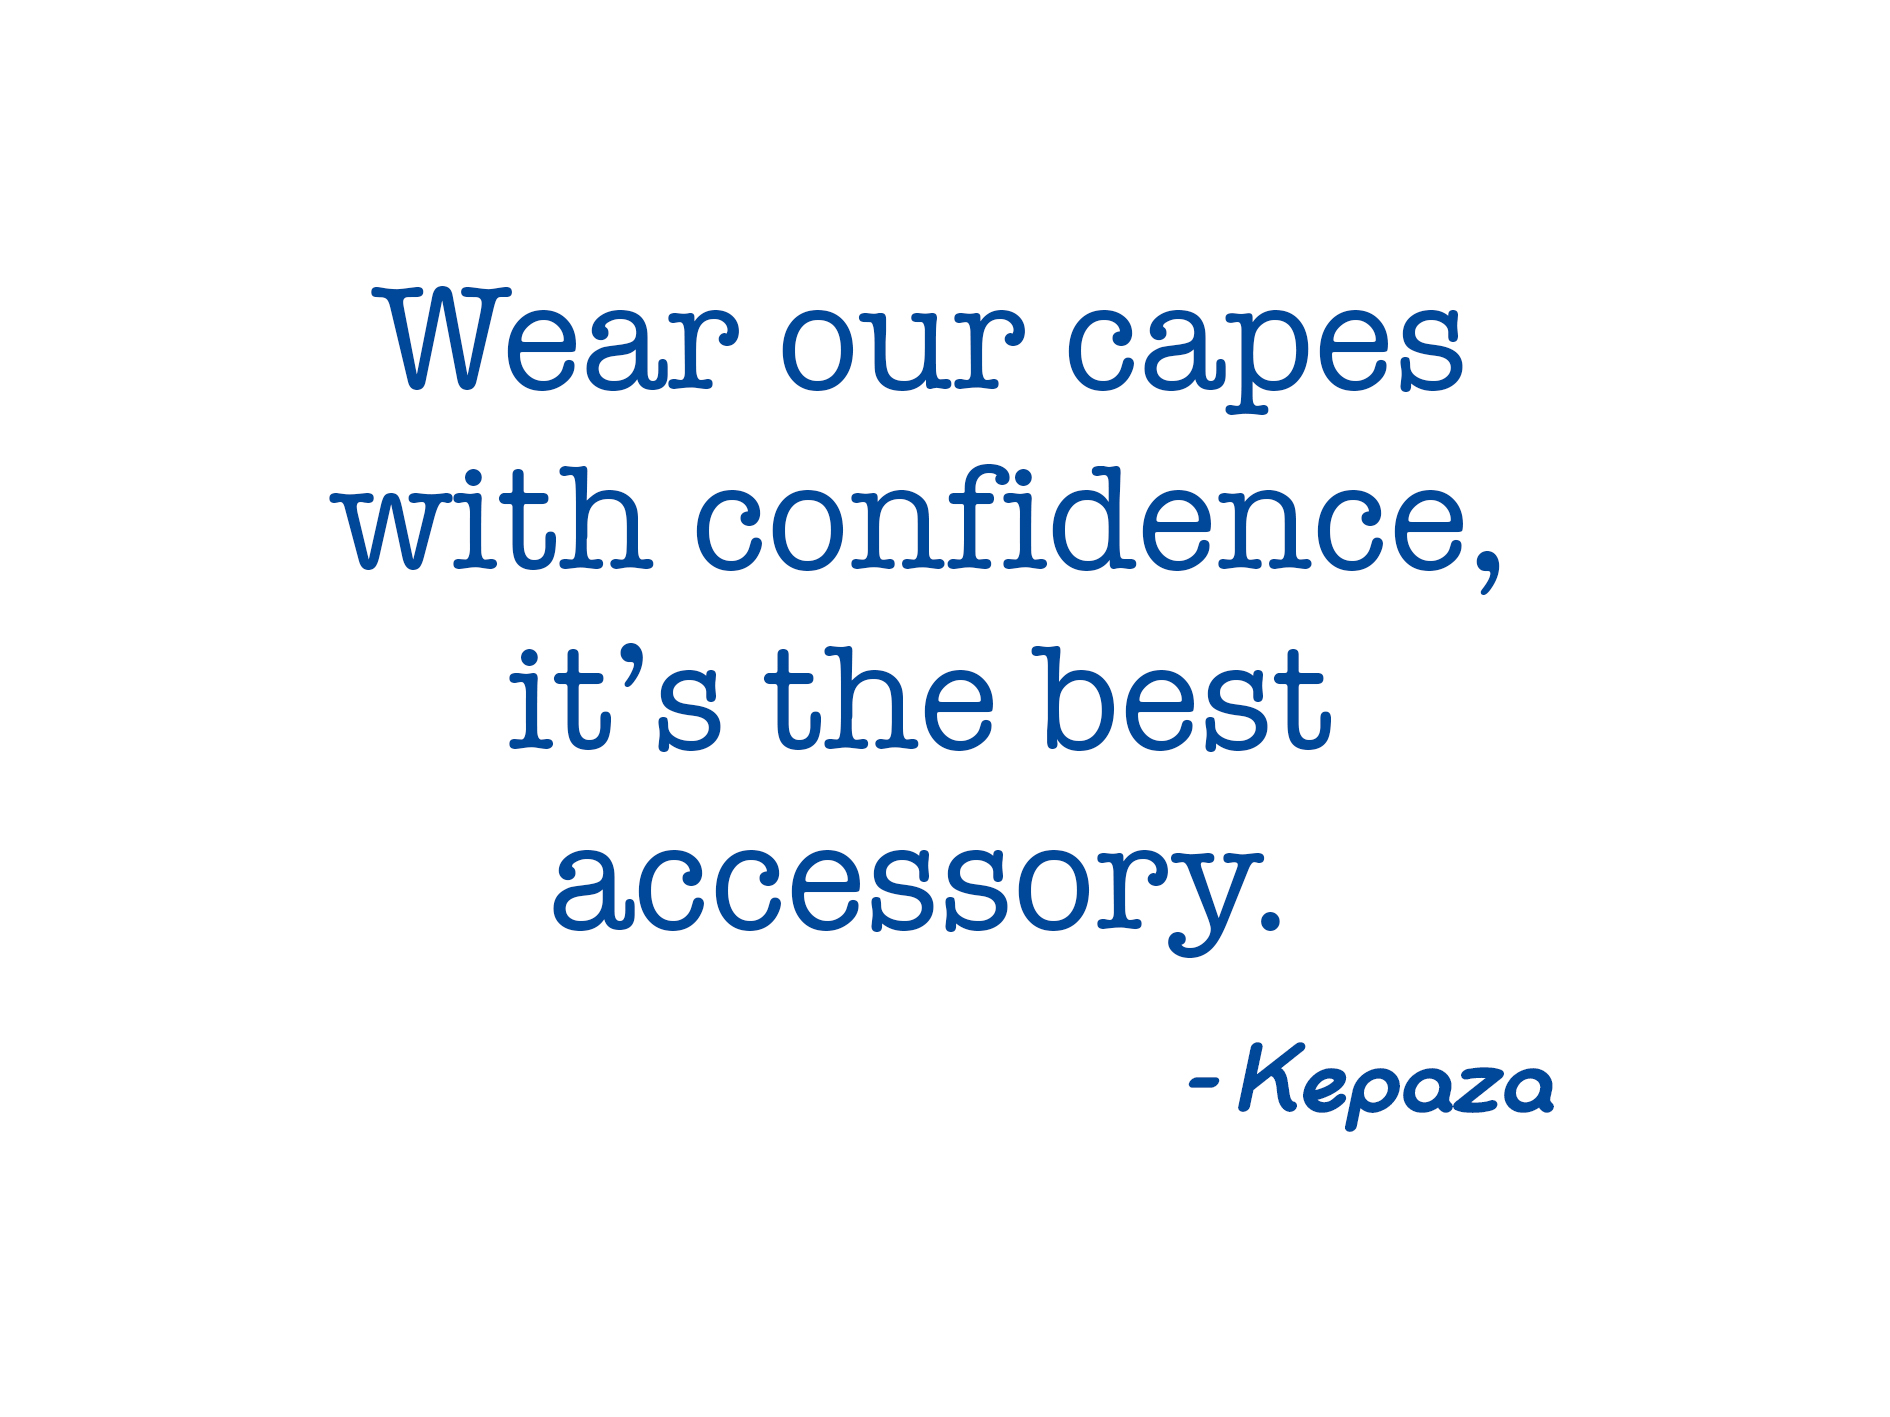 Kepaza Quote - Wear our capes with confidence, it's the best accessory